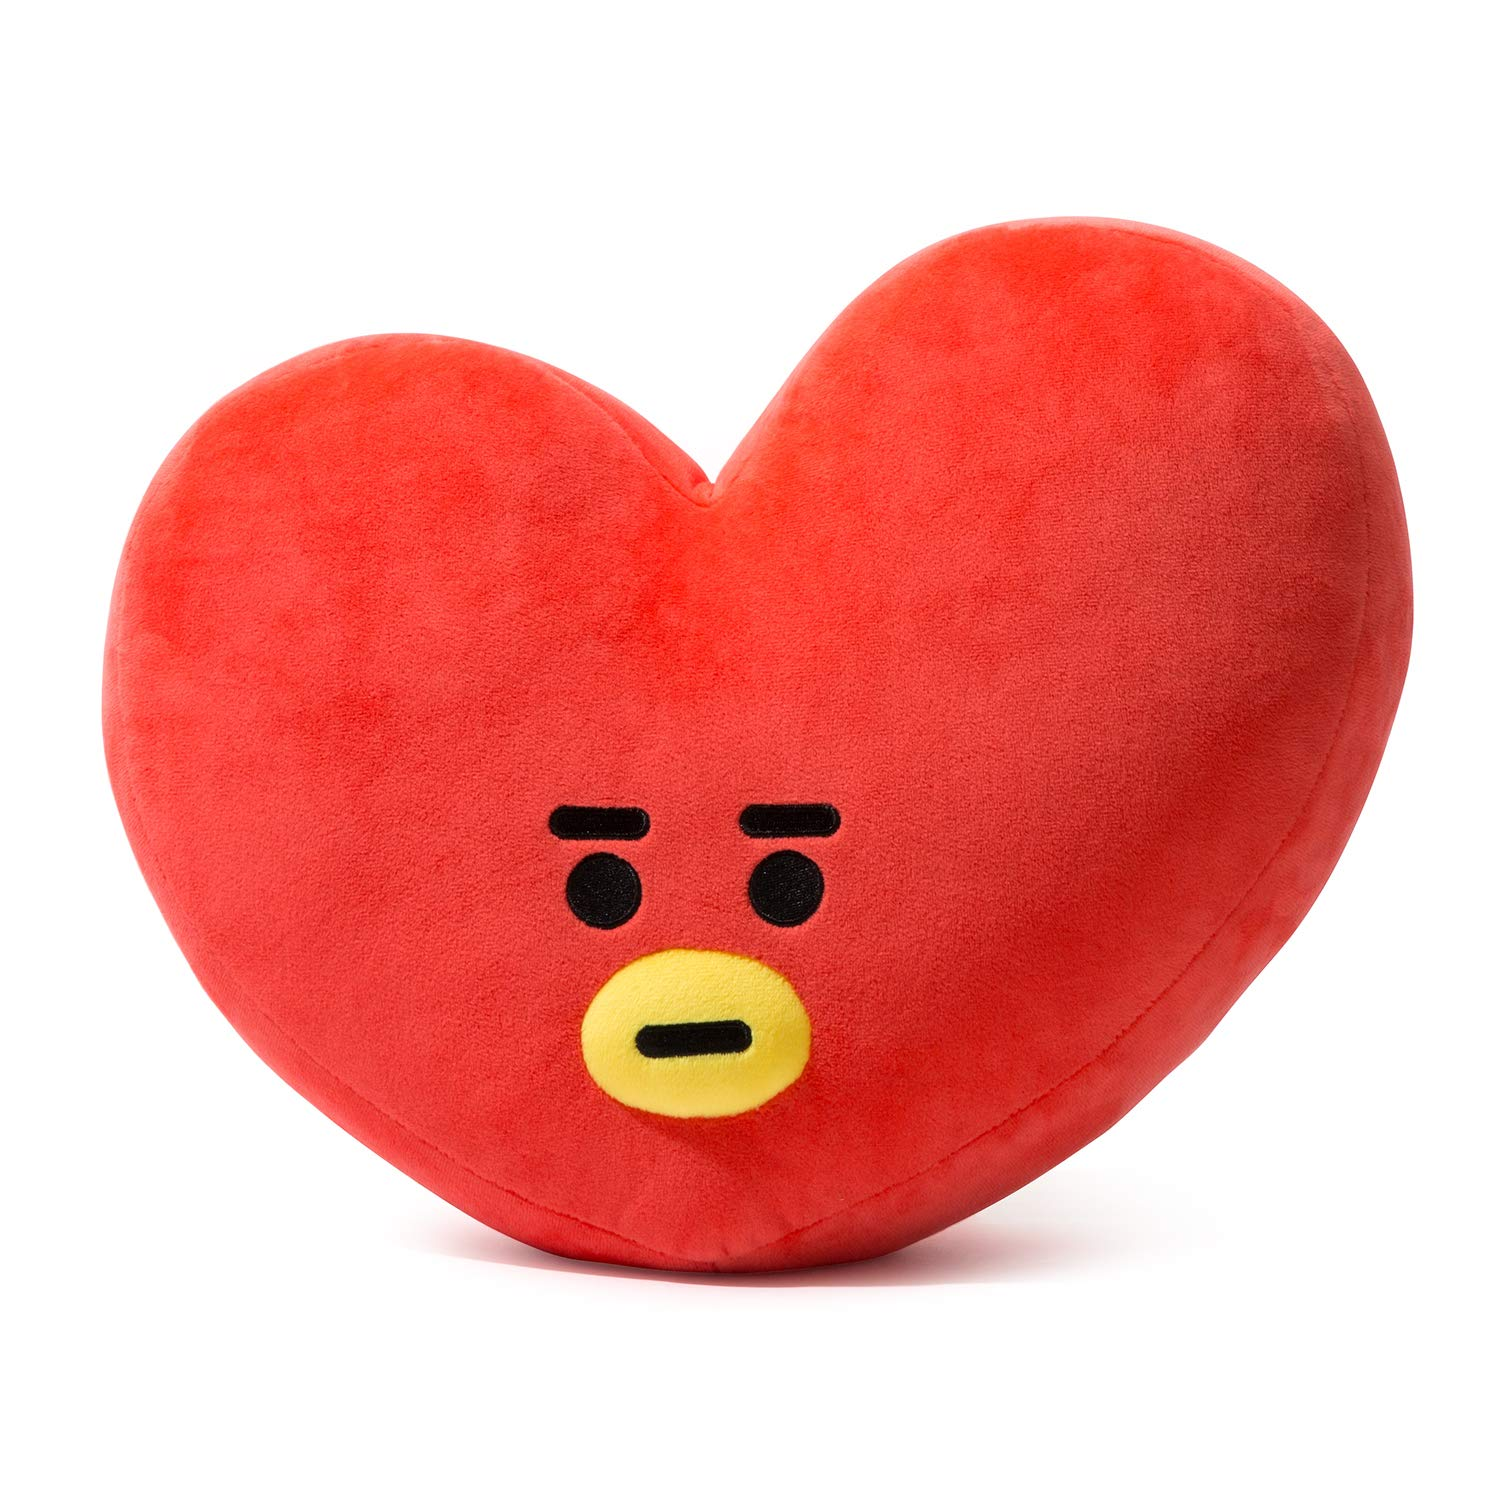 BT21 Official Merchandise by Line Friends - TATA Decorative Throw Pillows Cushion, 11 Inch by BT21